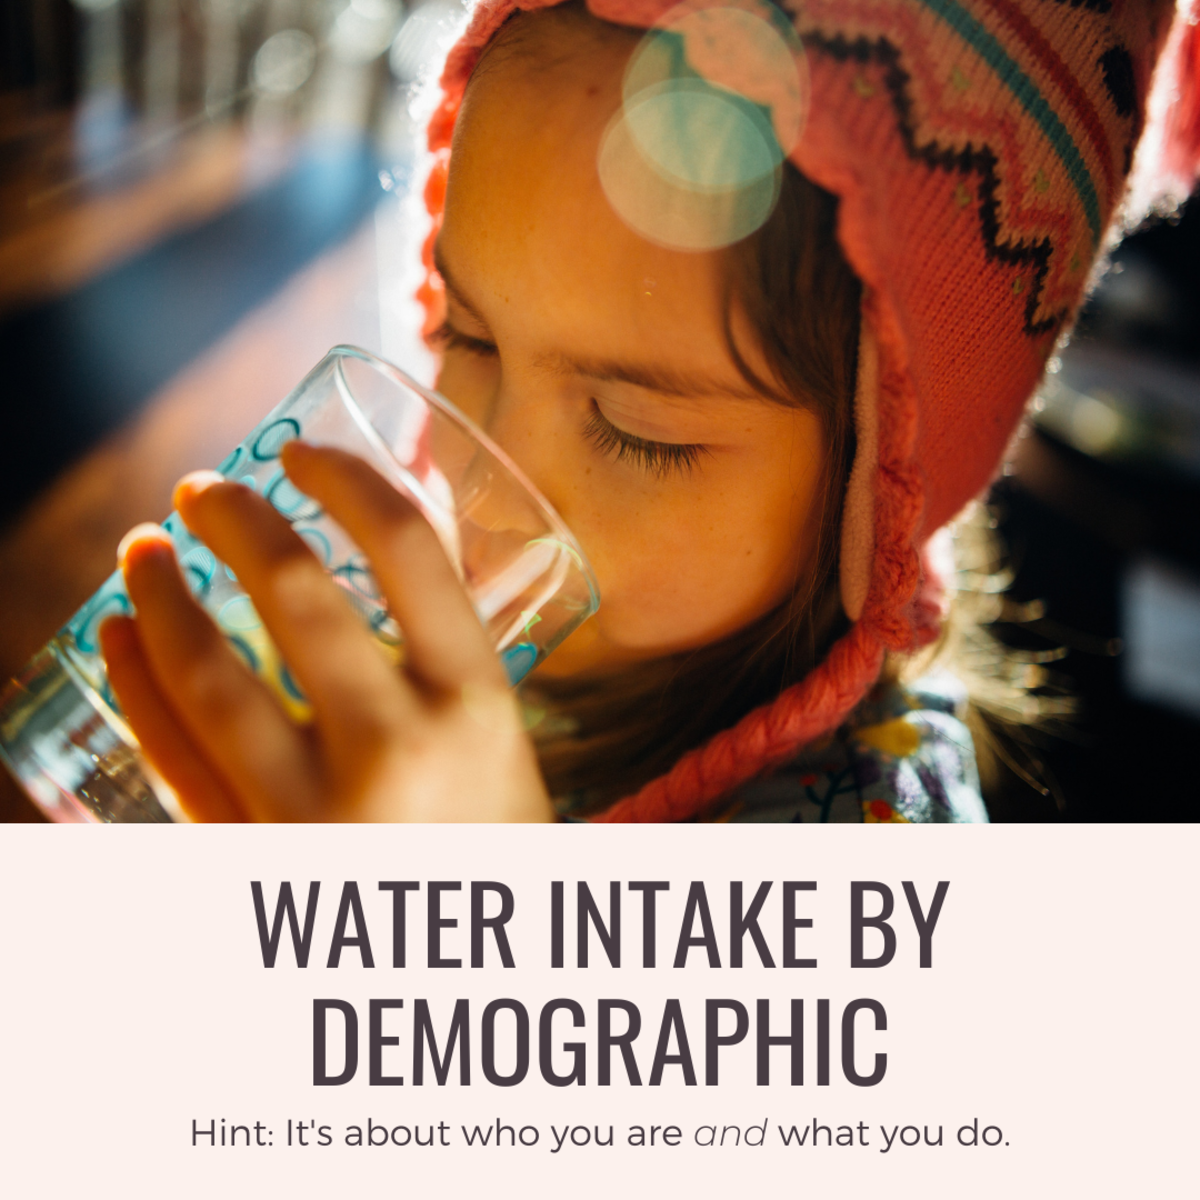 Water intake should be determined by age and activity level.